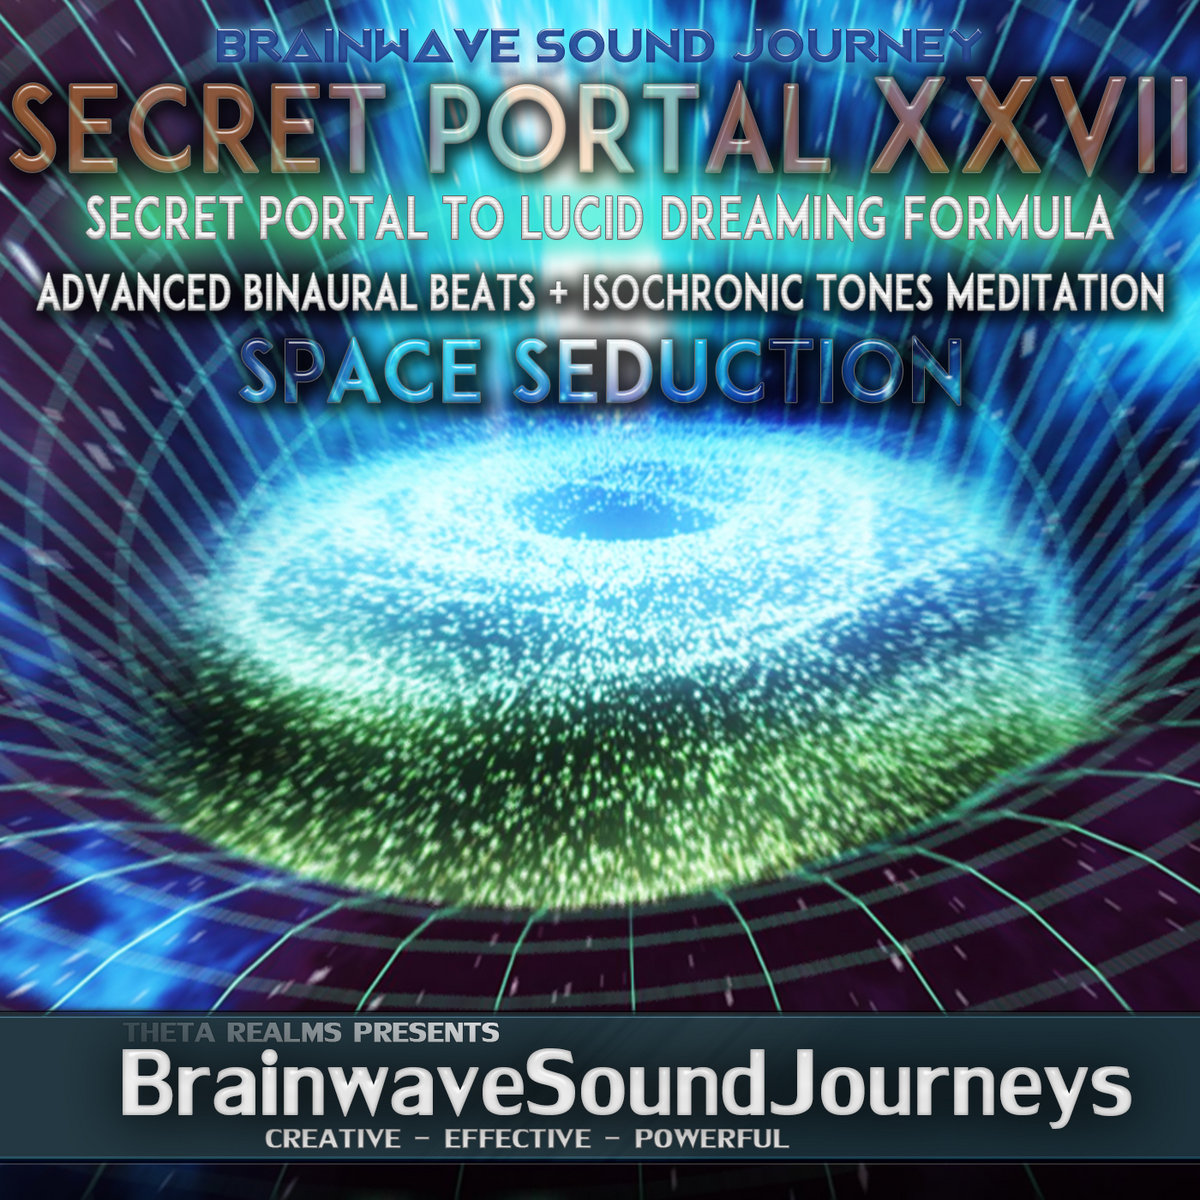 ✧SPACE SEDUCTION✧3 HOUR INSTANT LUCID DREAMING| Lucid Dreaming